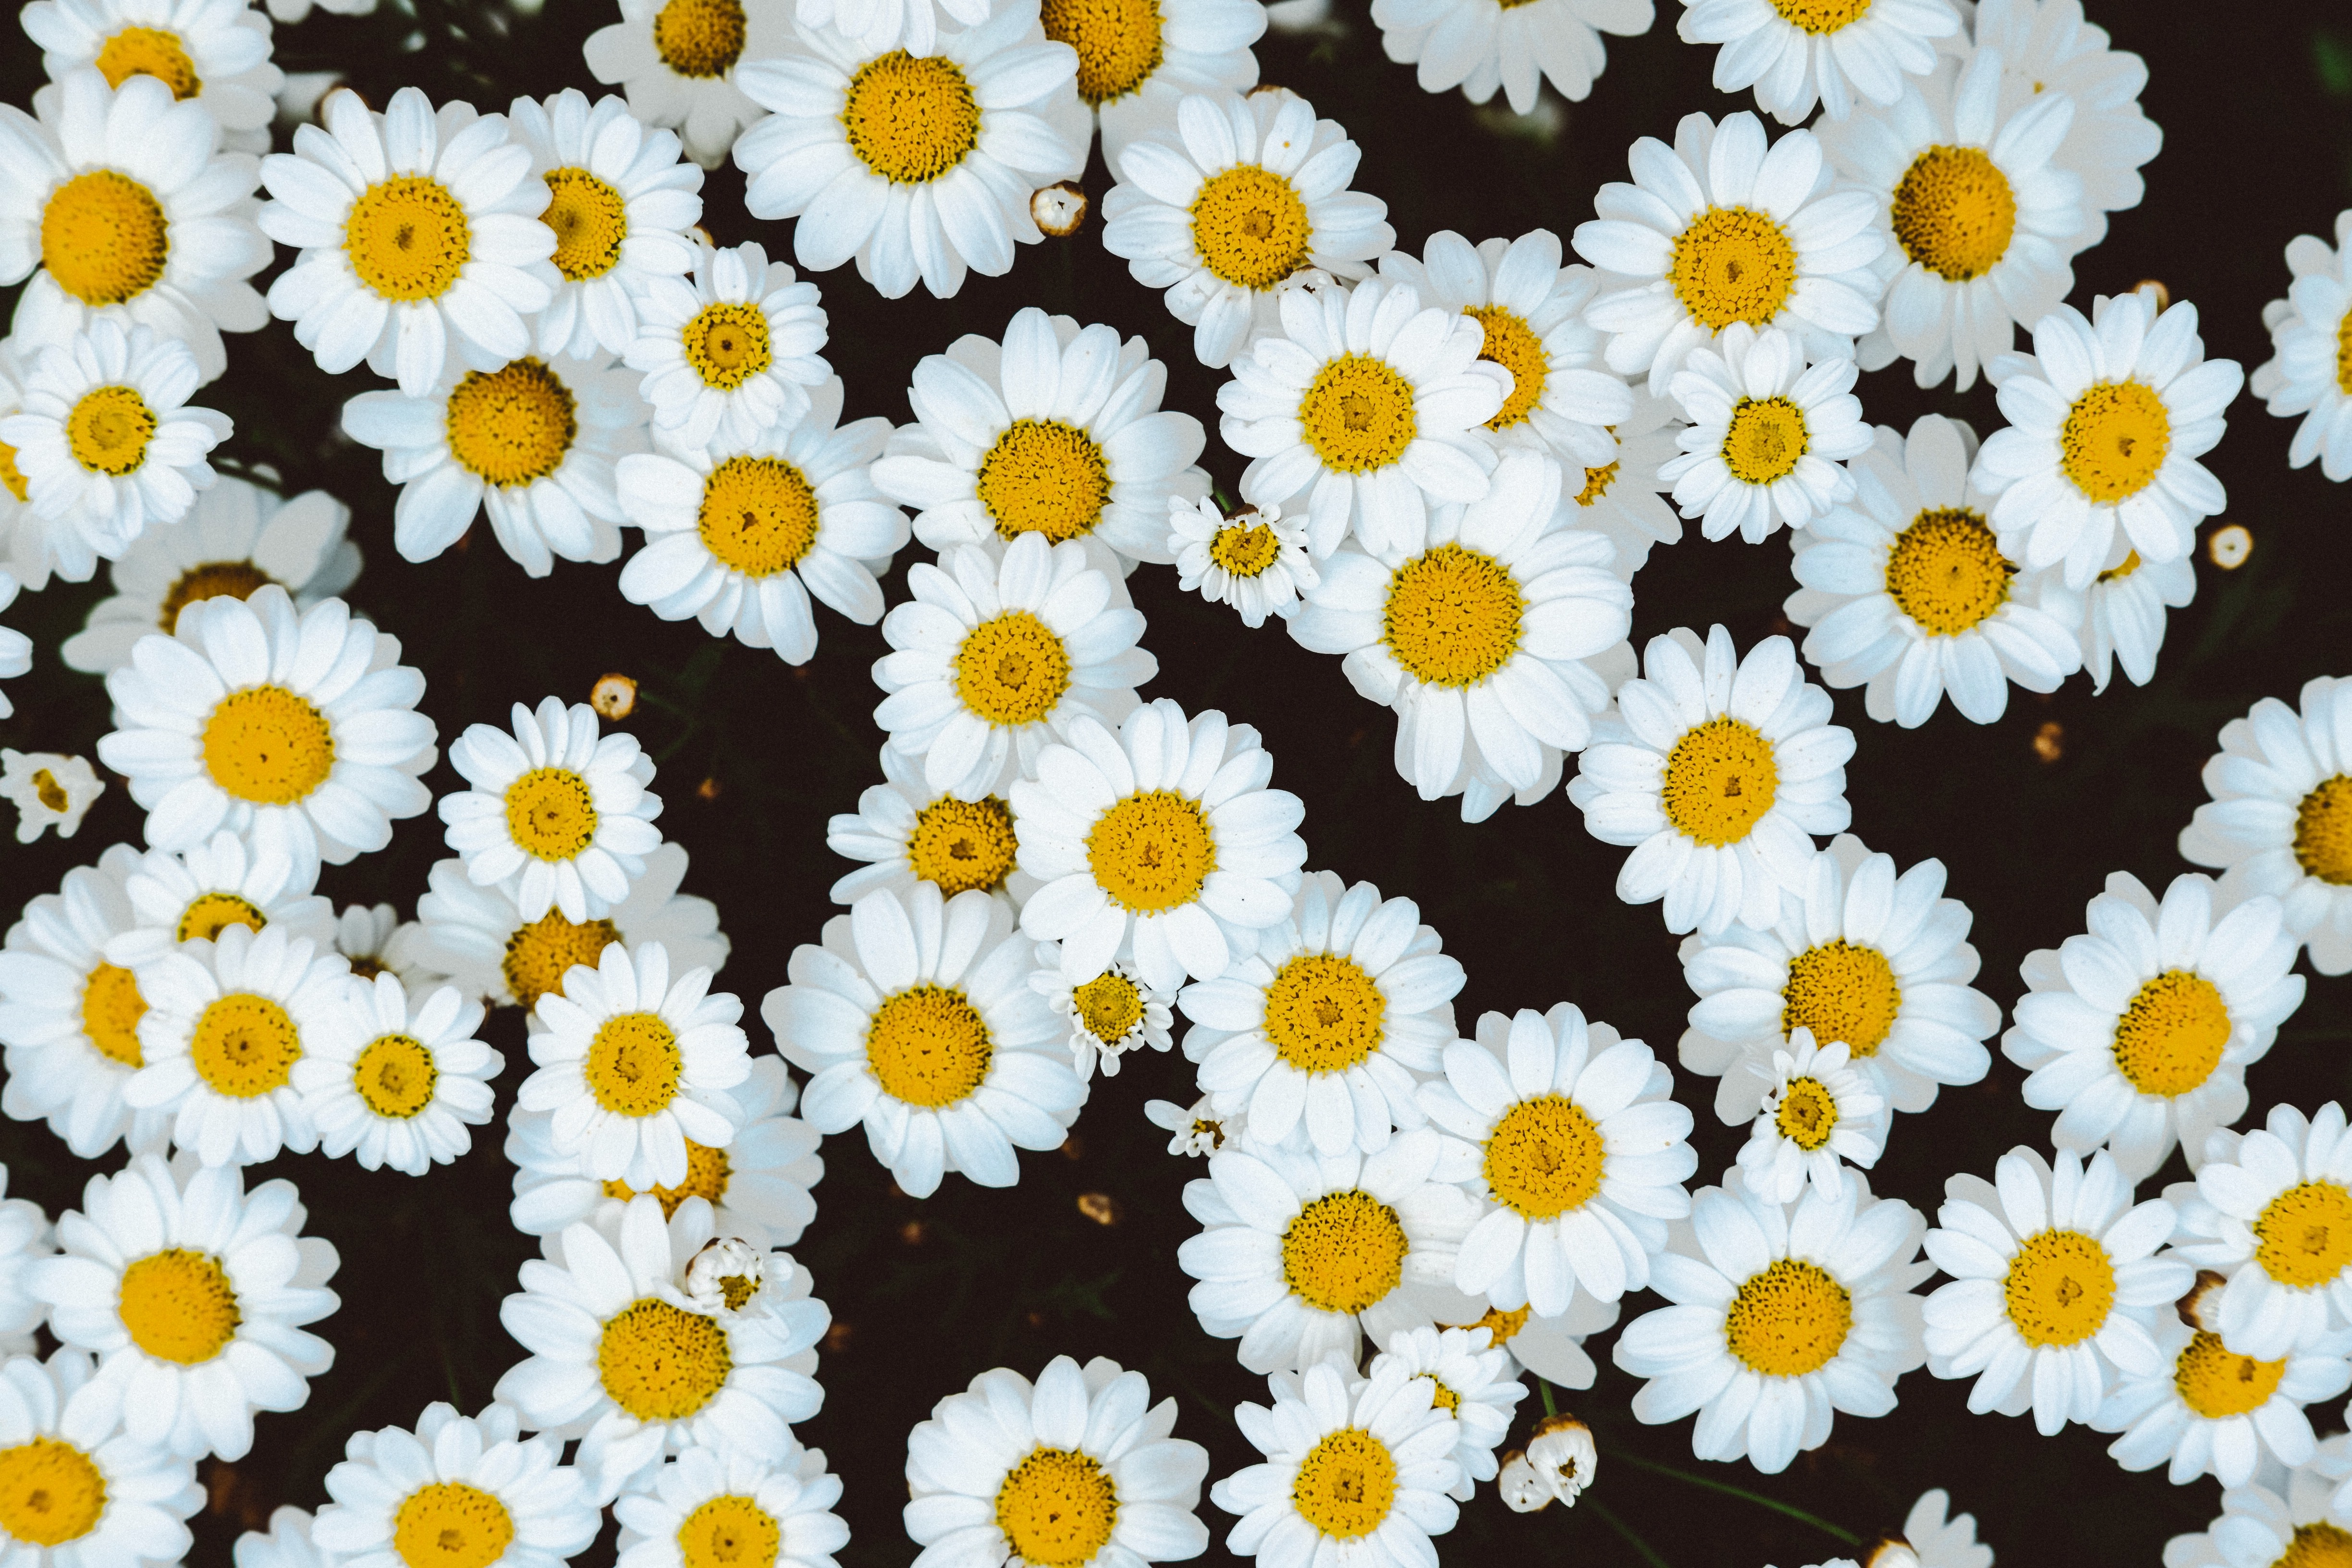 An overhead shot of a bed of chamomile flowers